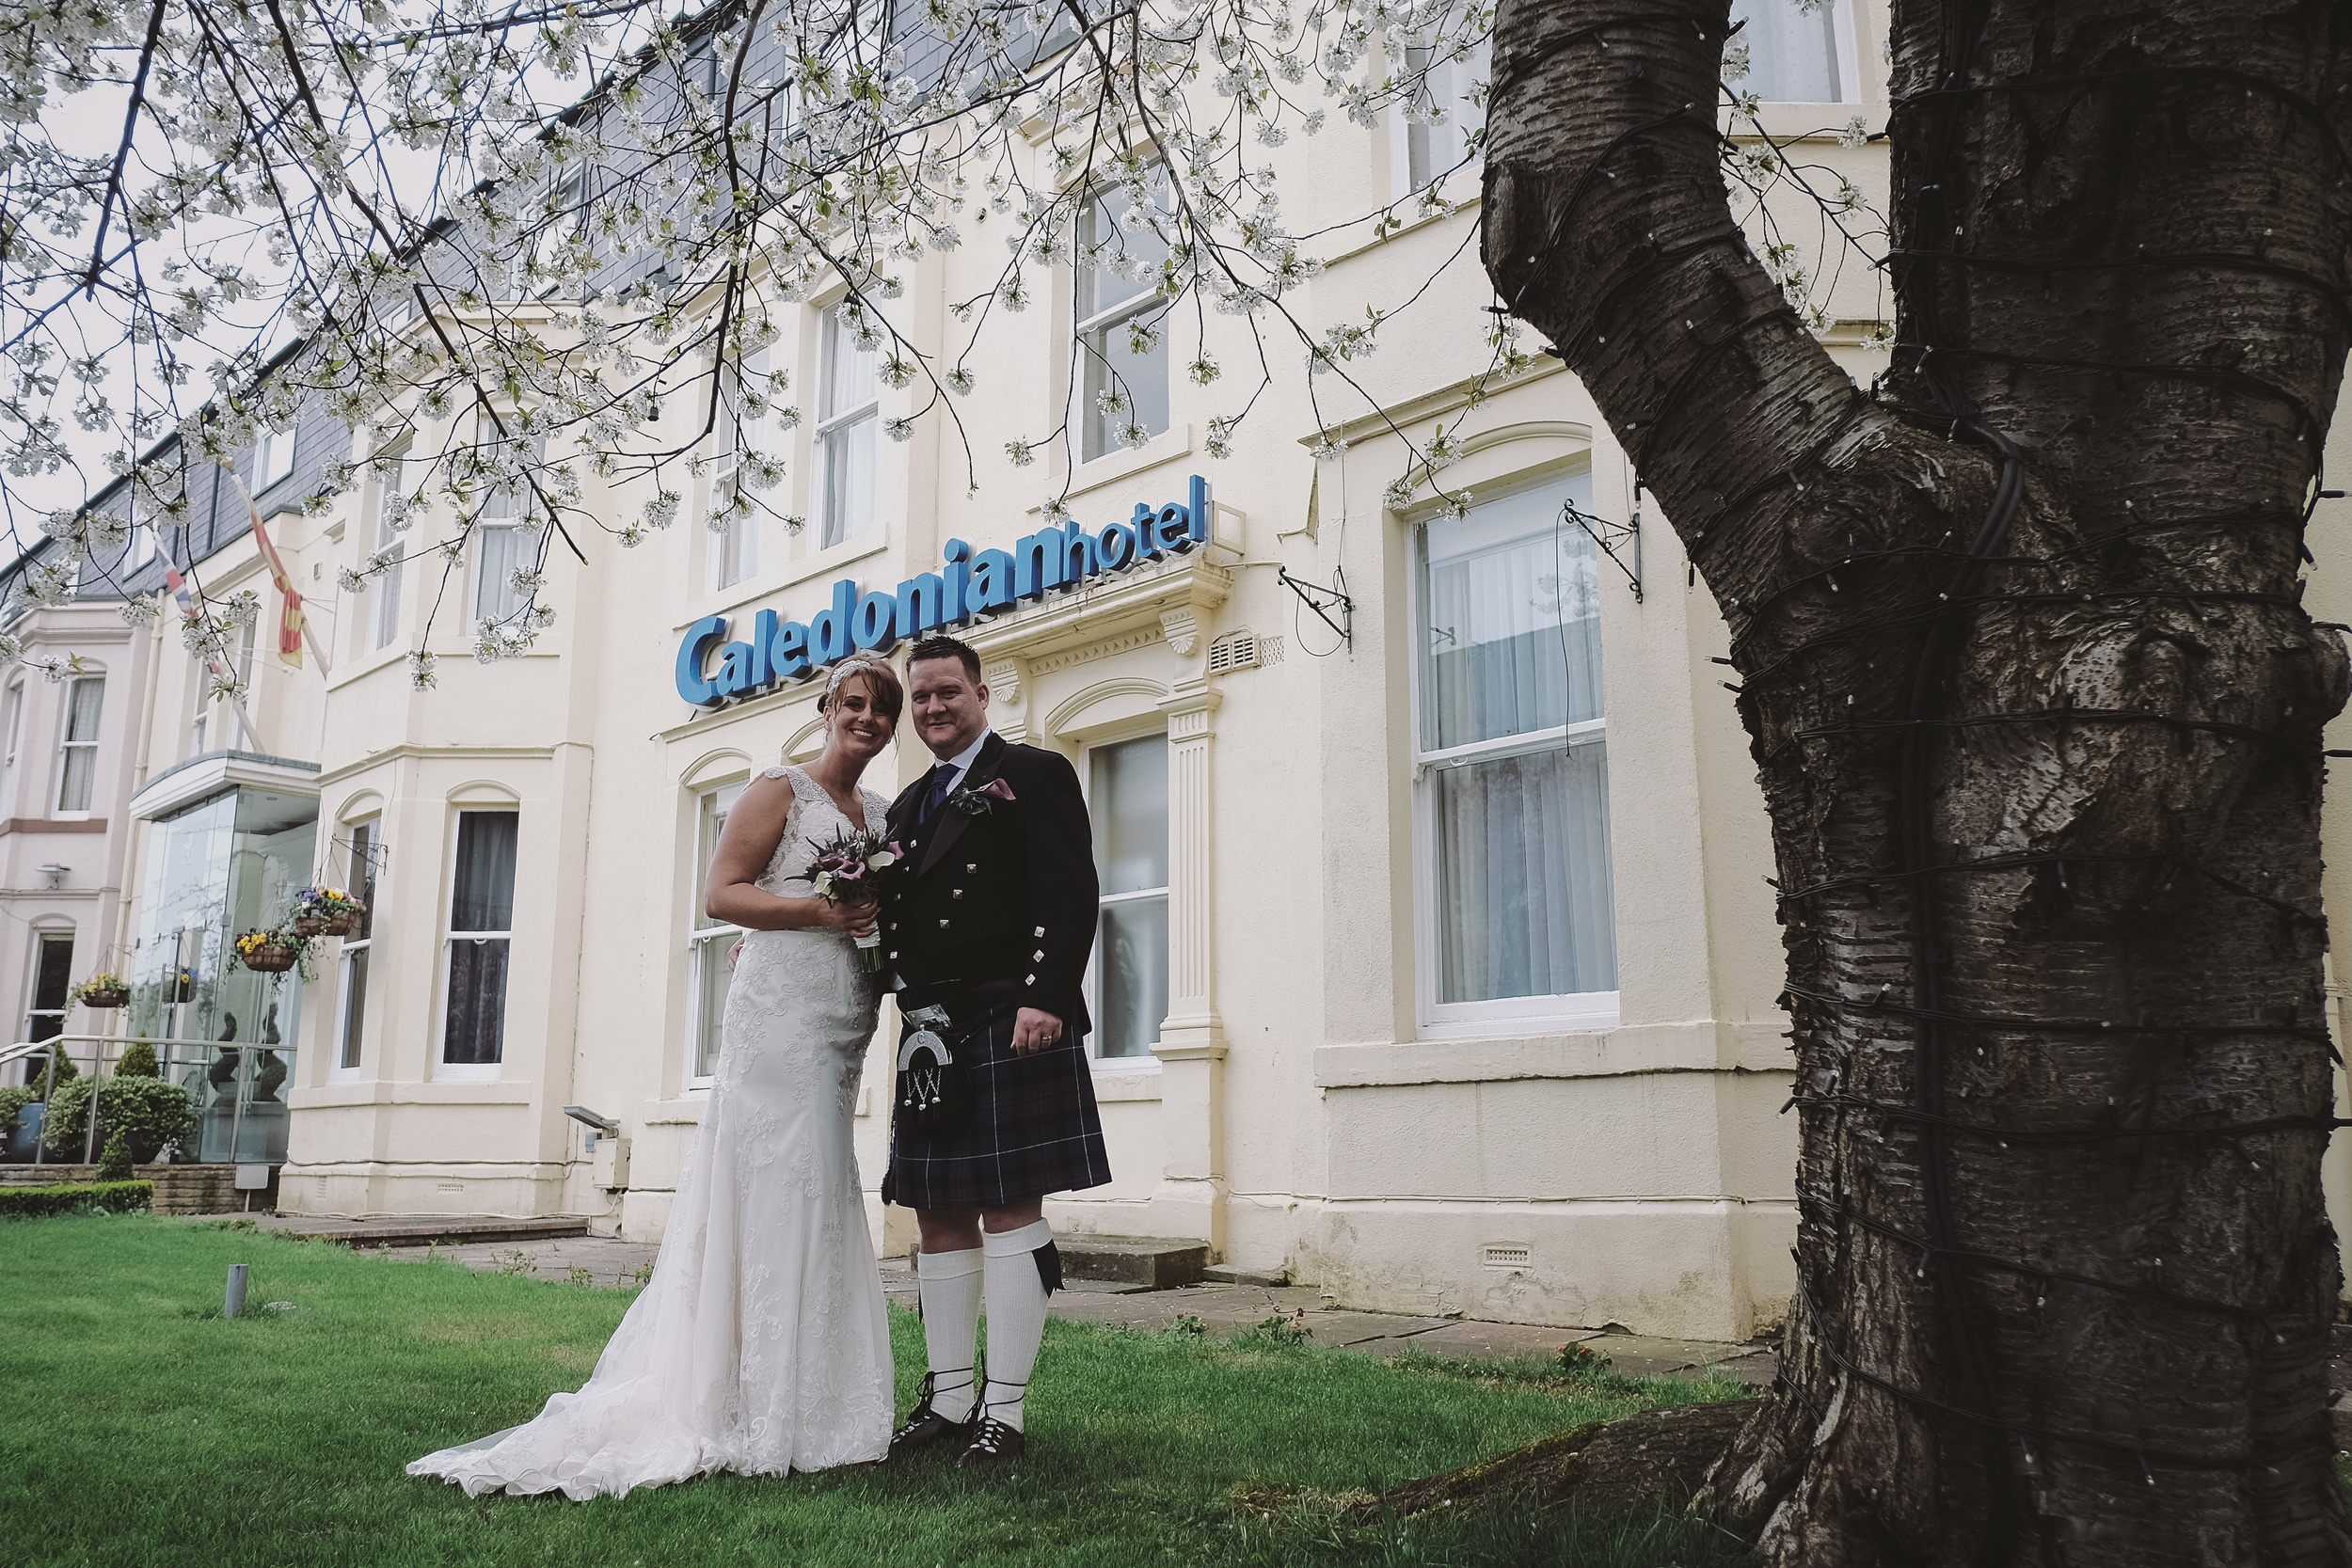 Newcastle Wedding Photographer // Bride and groom pose outside Caledonian Hotel